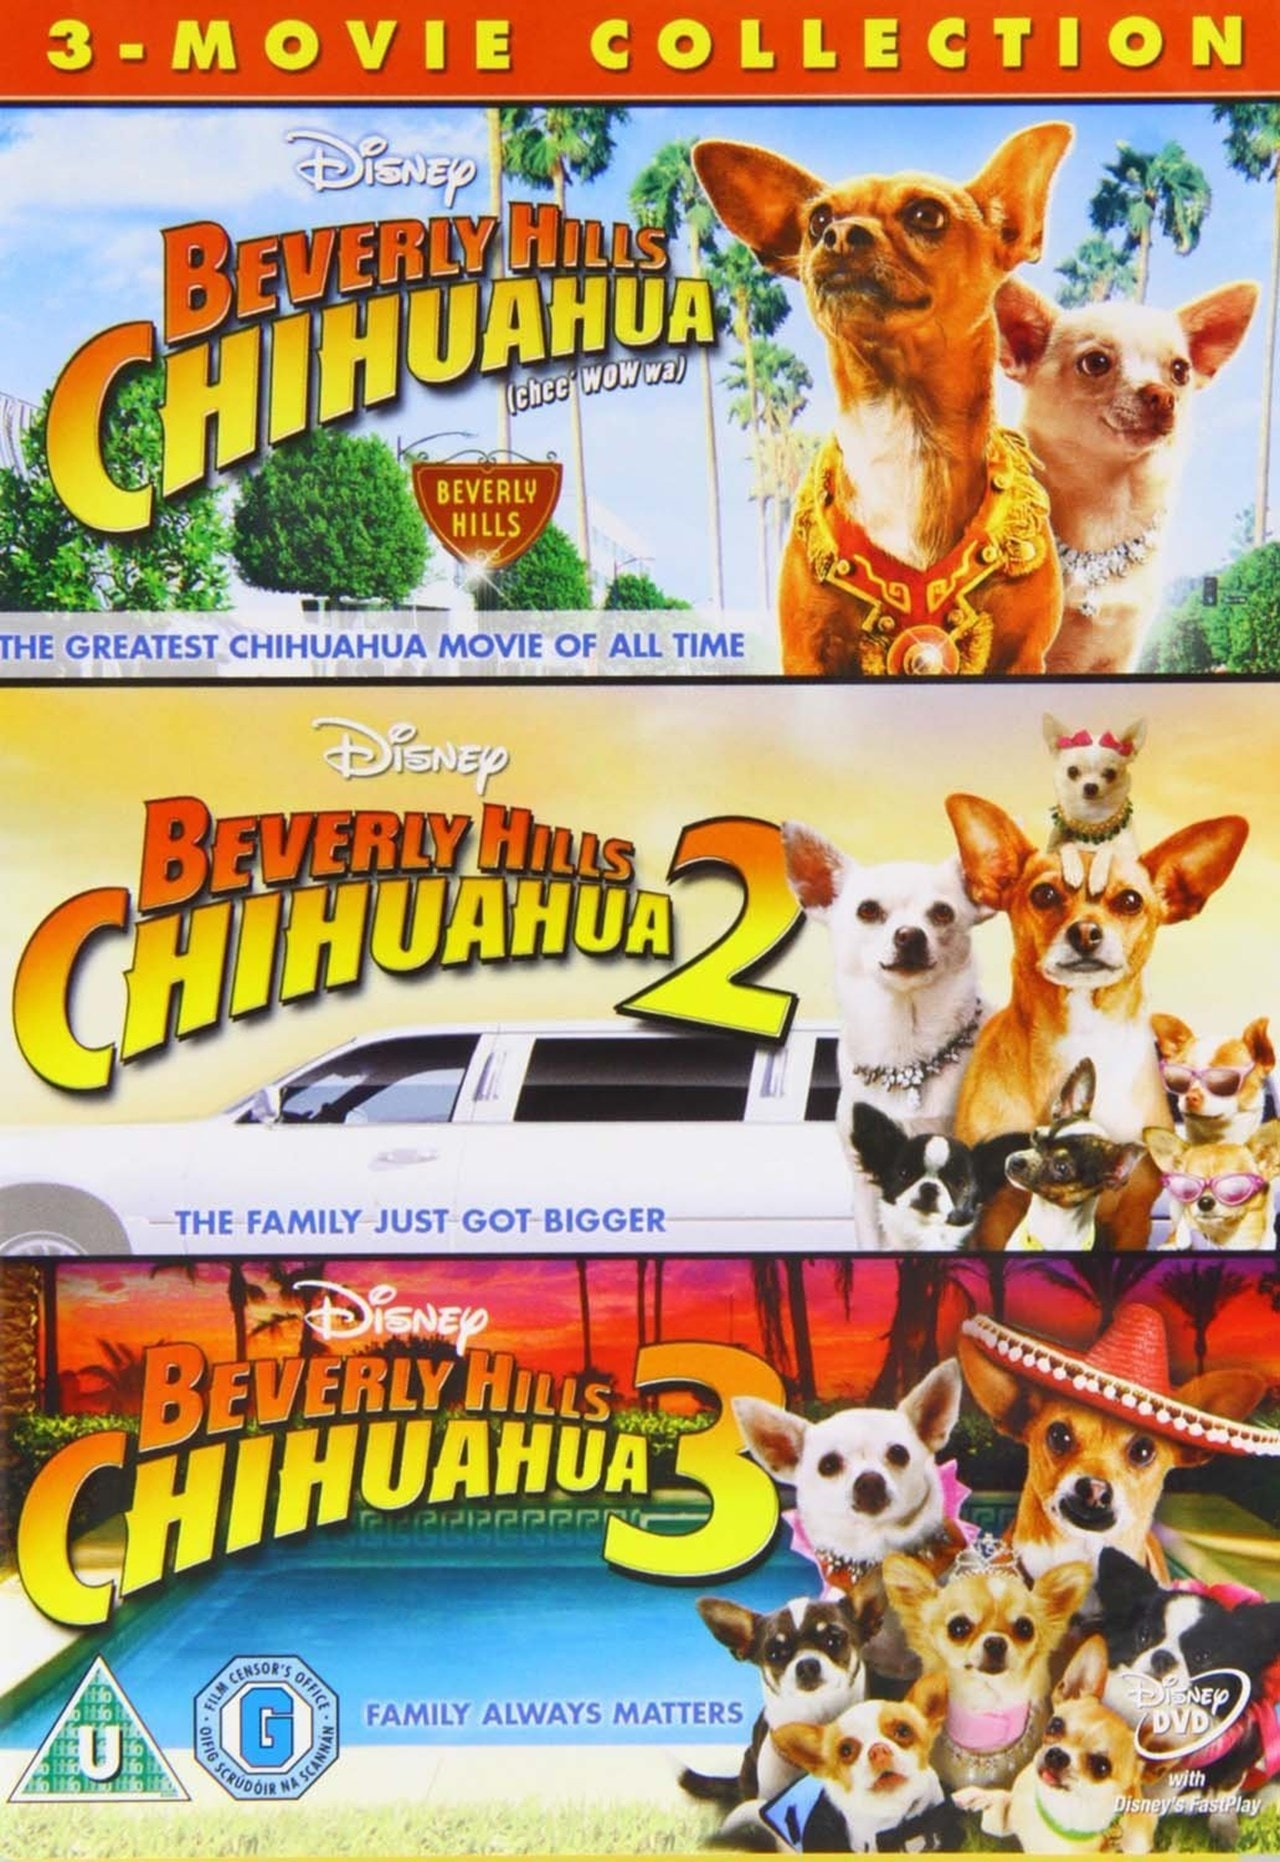 Beverly Hills Chihuahua: 3-movie Collection - 1